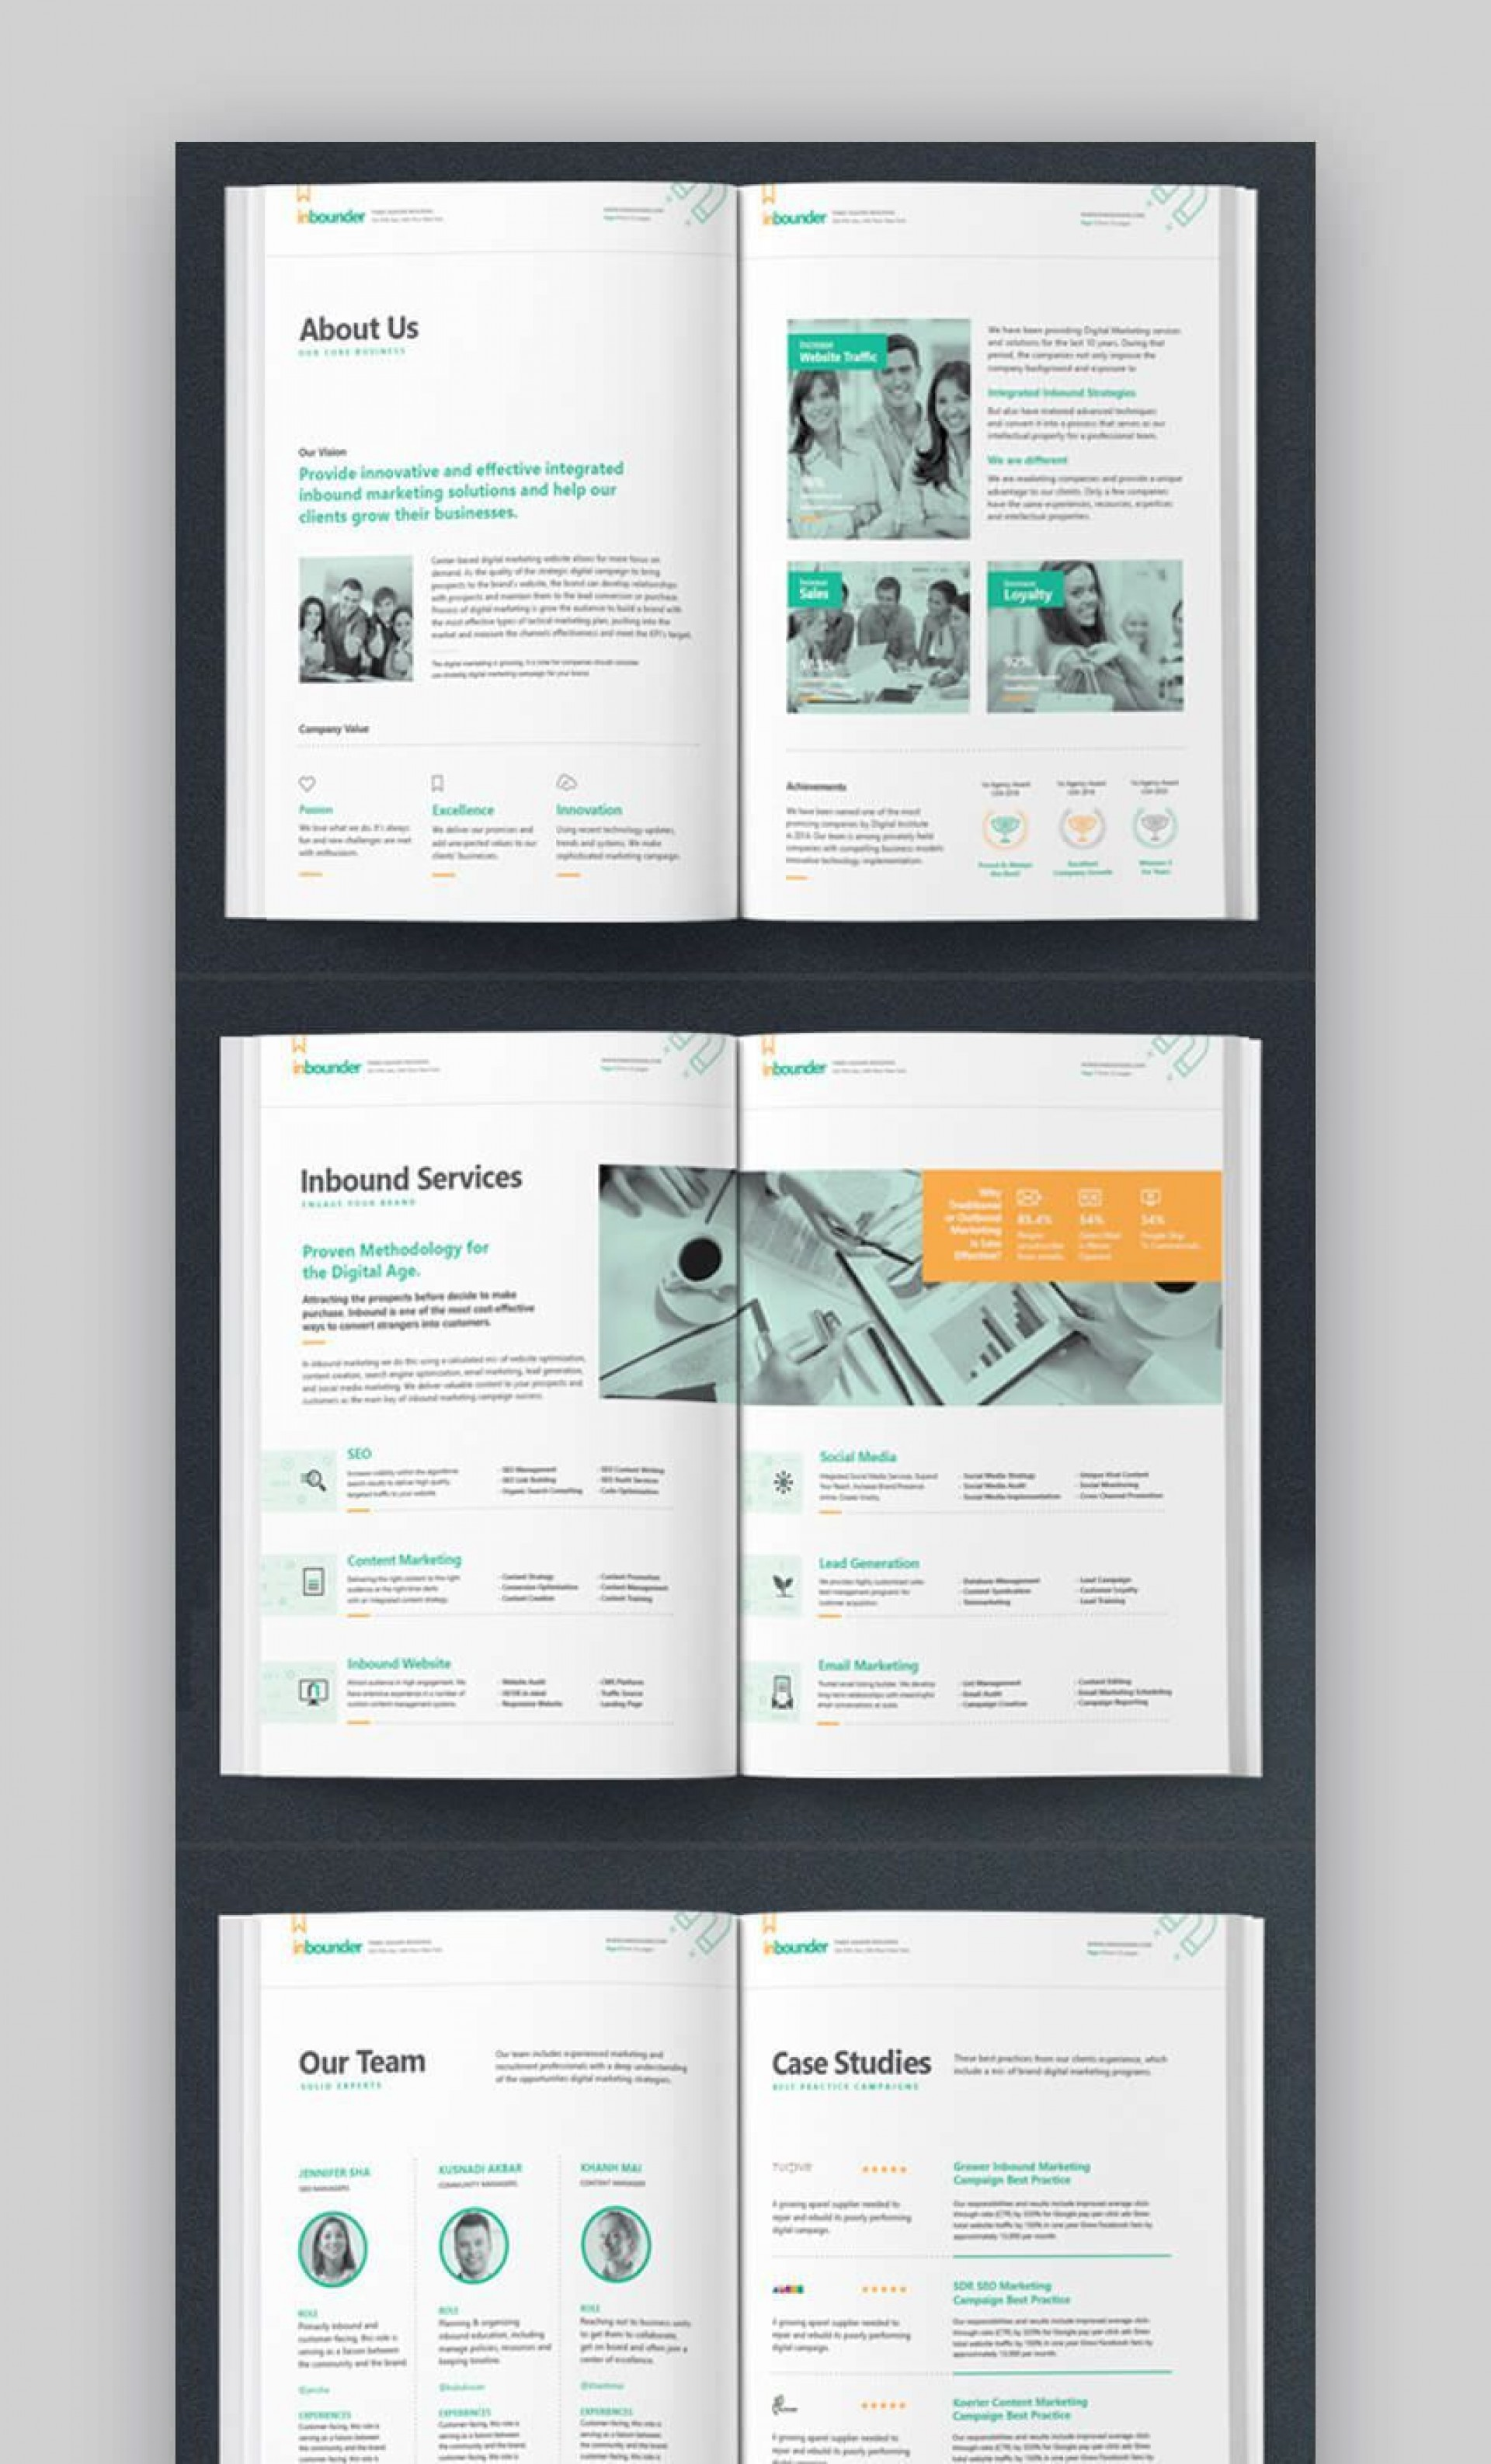 002 Outstanding Social Media Proposal Template 2019 High Resolution 1920